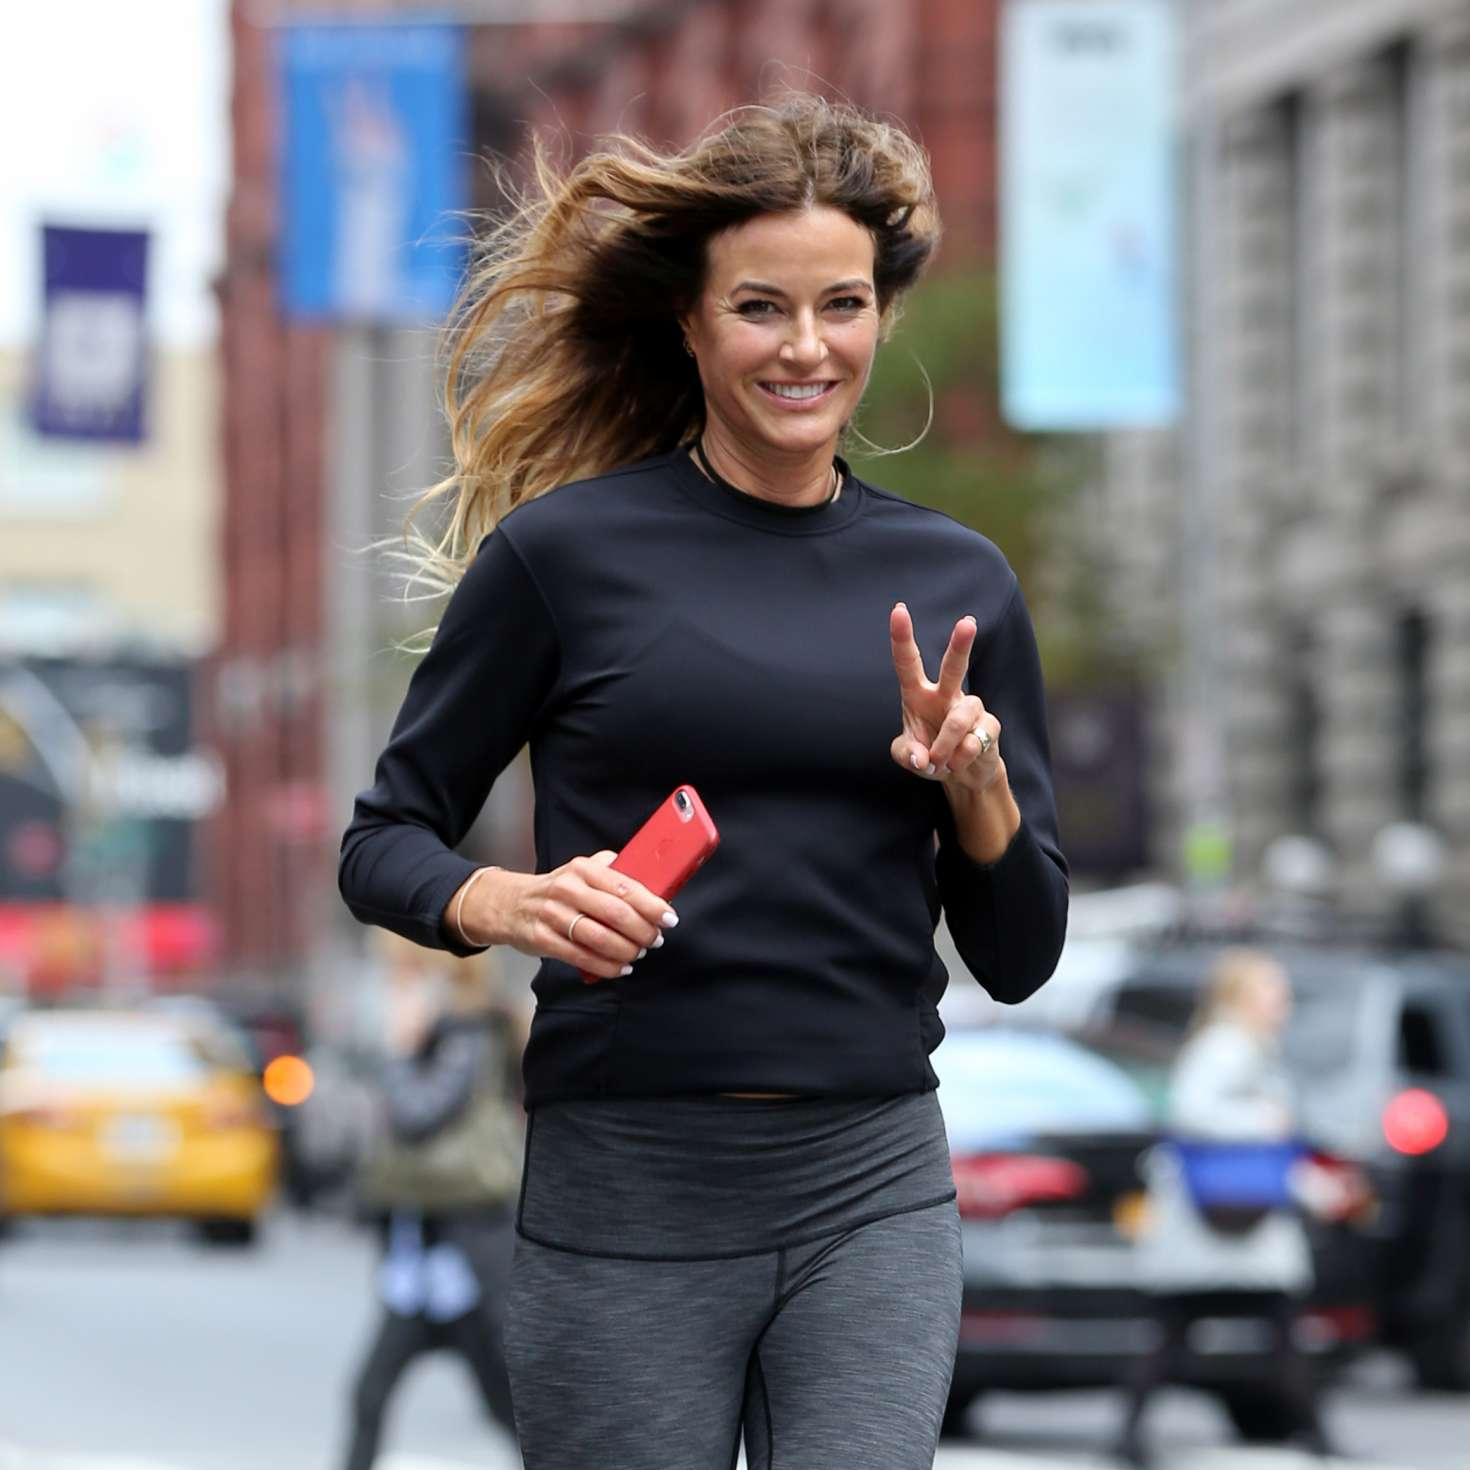 Kelly Bensimon 2017 : Kelly Bensimon: Goes for a jog in NYC -01